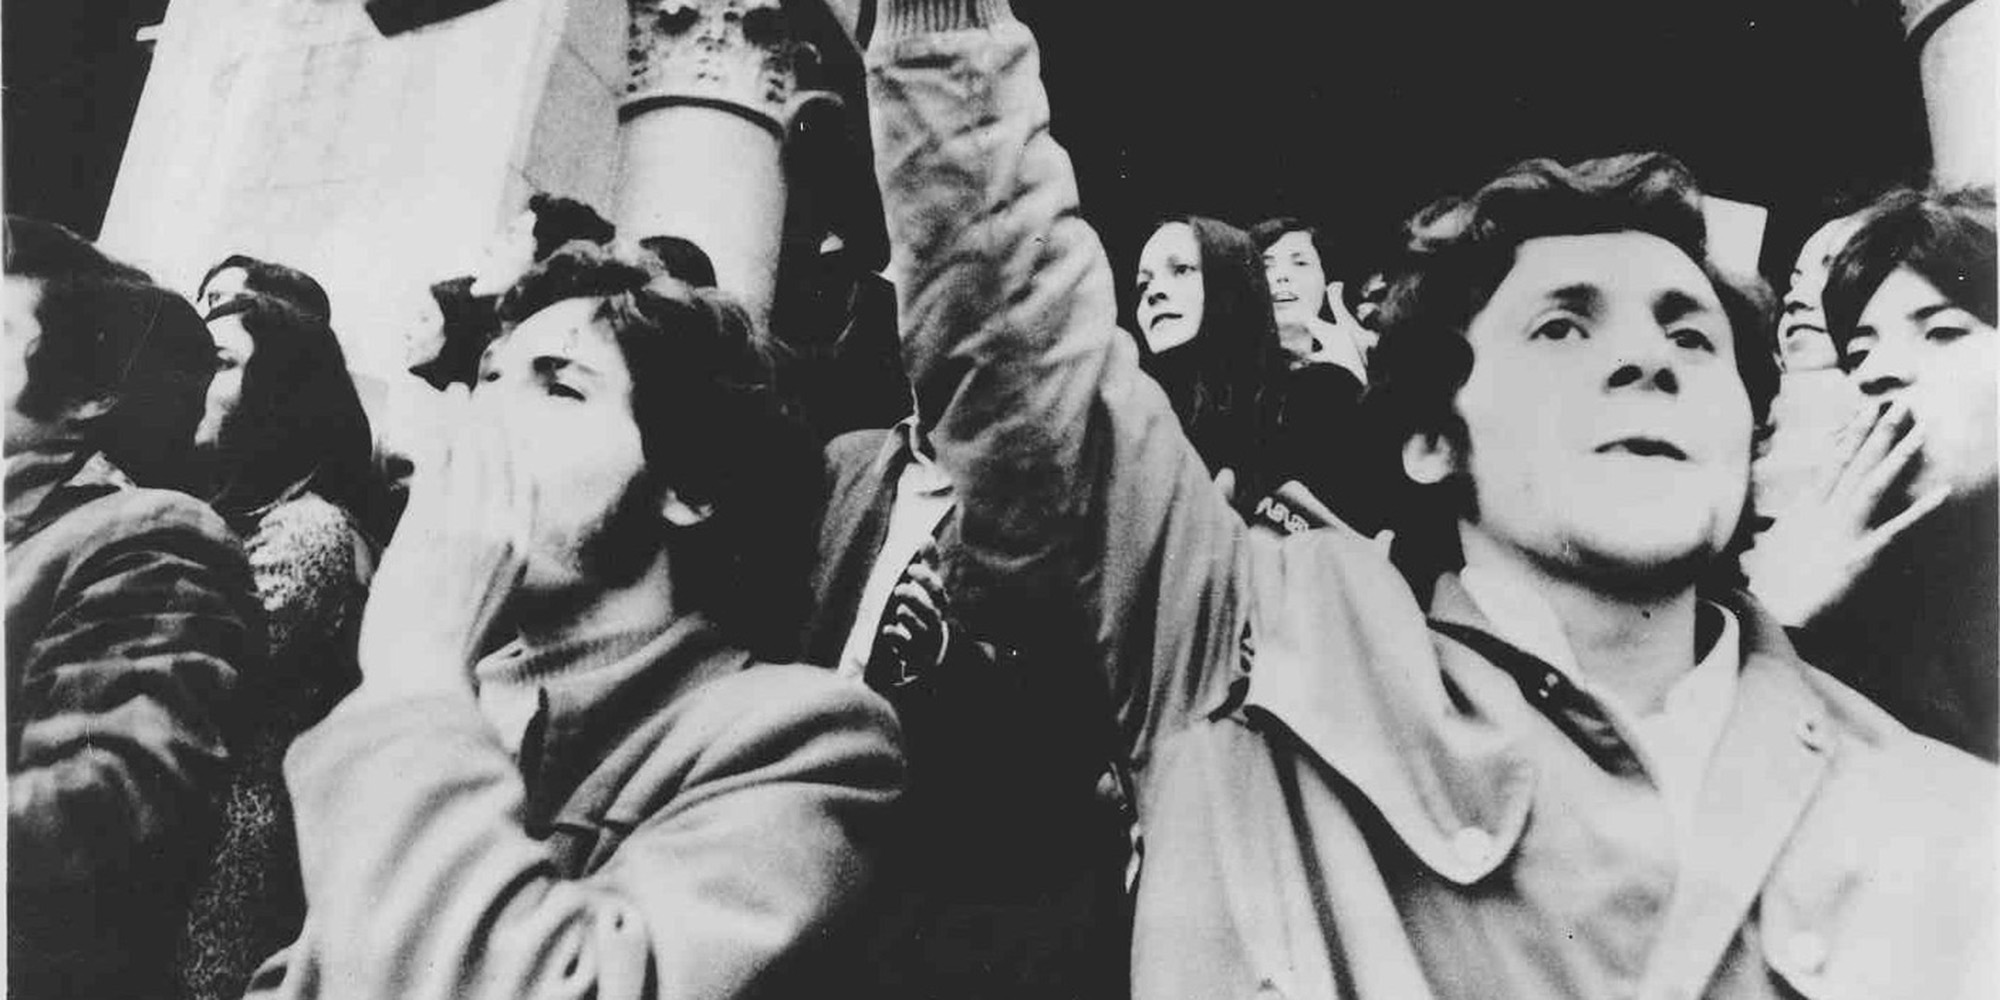 an analysis of the columbia revolt This thesis asserts that the rebellion that occurred at columbia altered the   move forward the interpretation of student protest to be more.